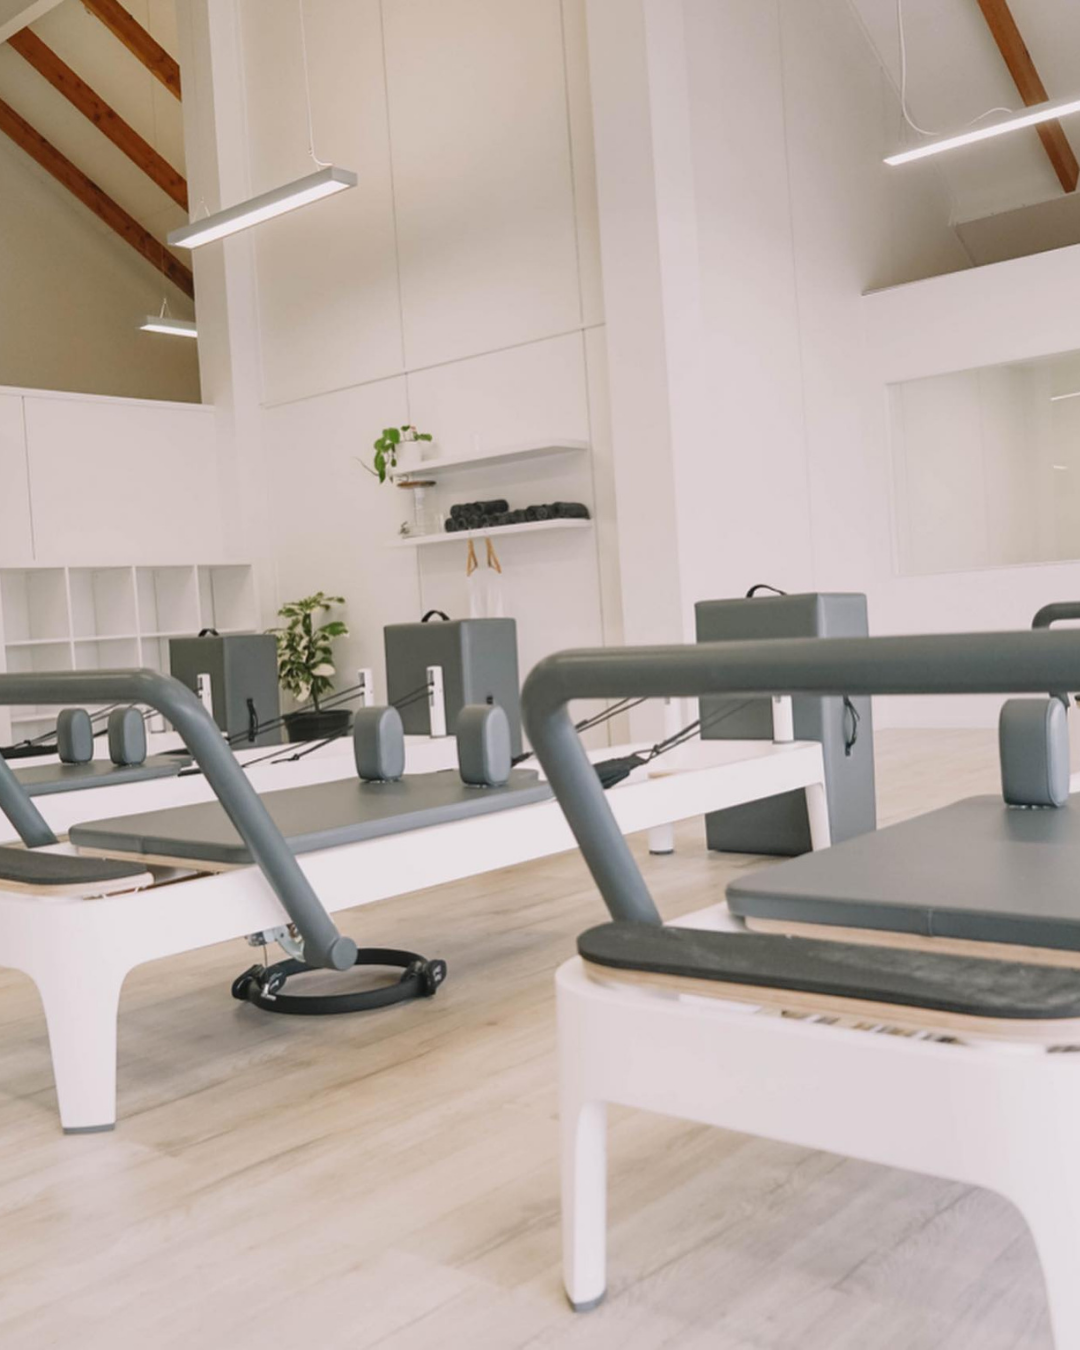 An empty gym with Pilates equipment